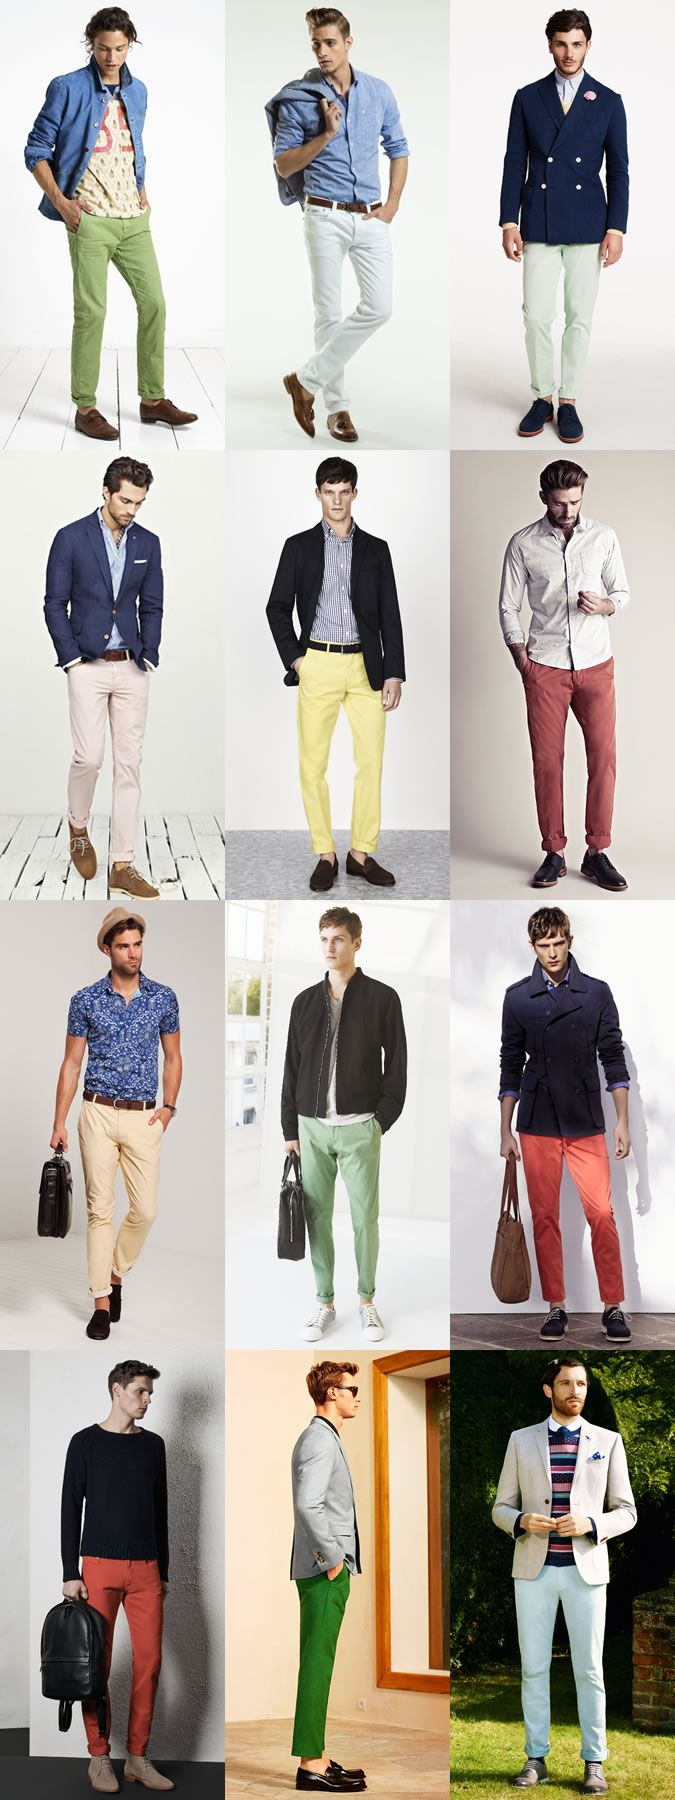 Men's Summer Coloured Chinos and Trousers Outfit Inspiration Lookbook